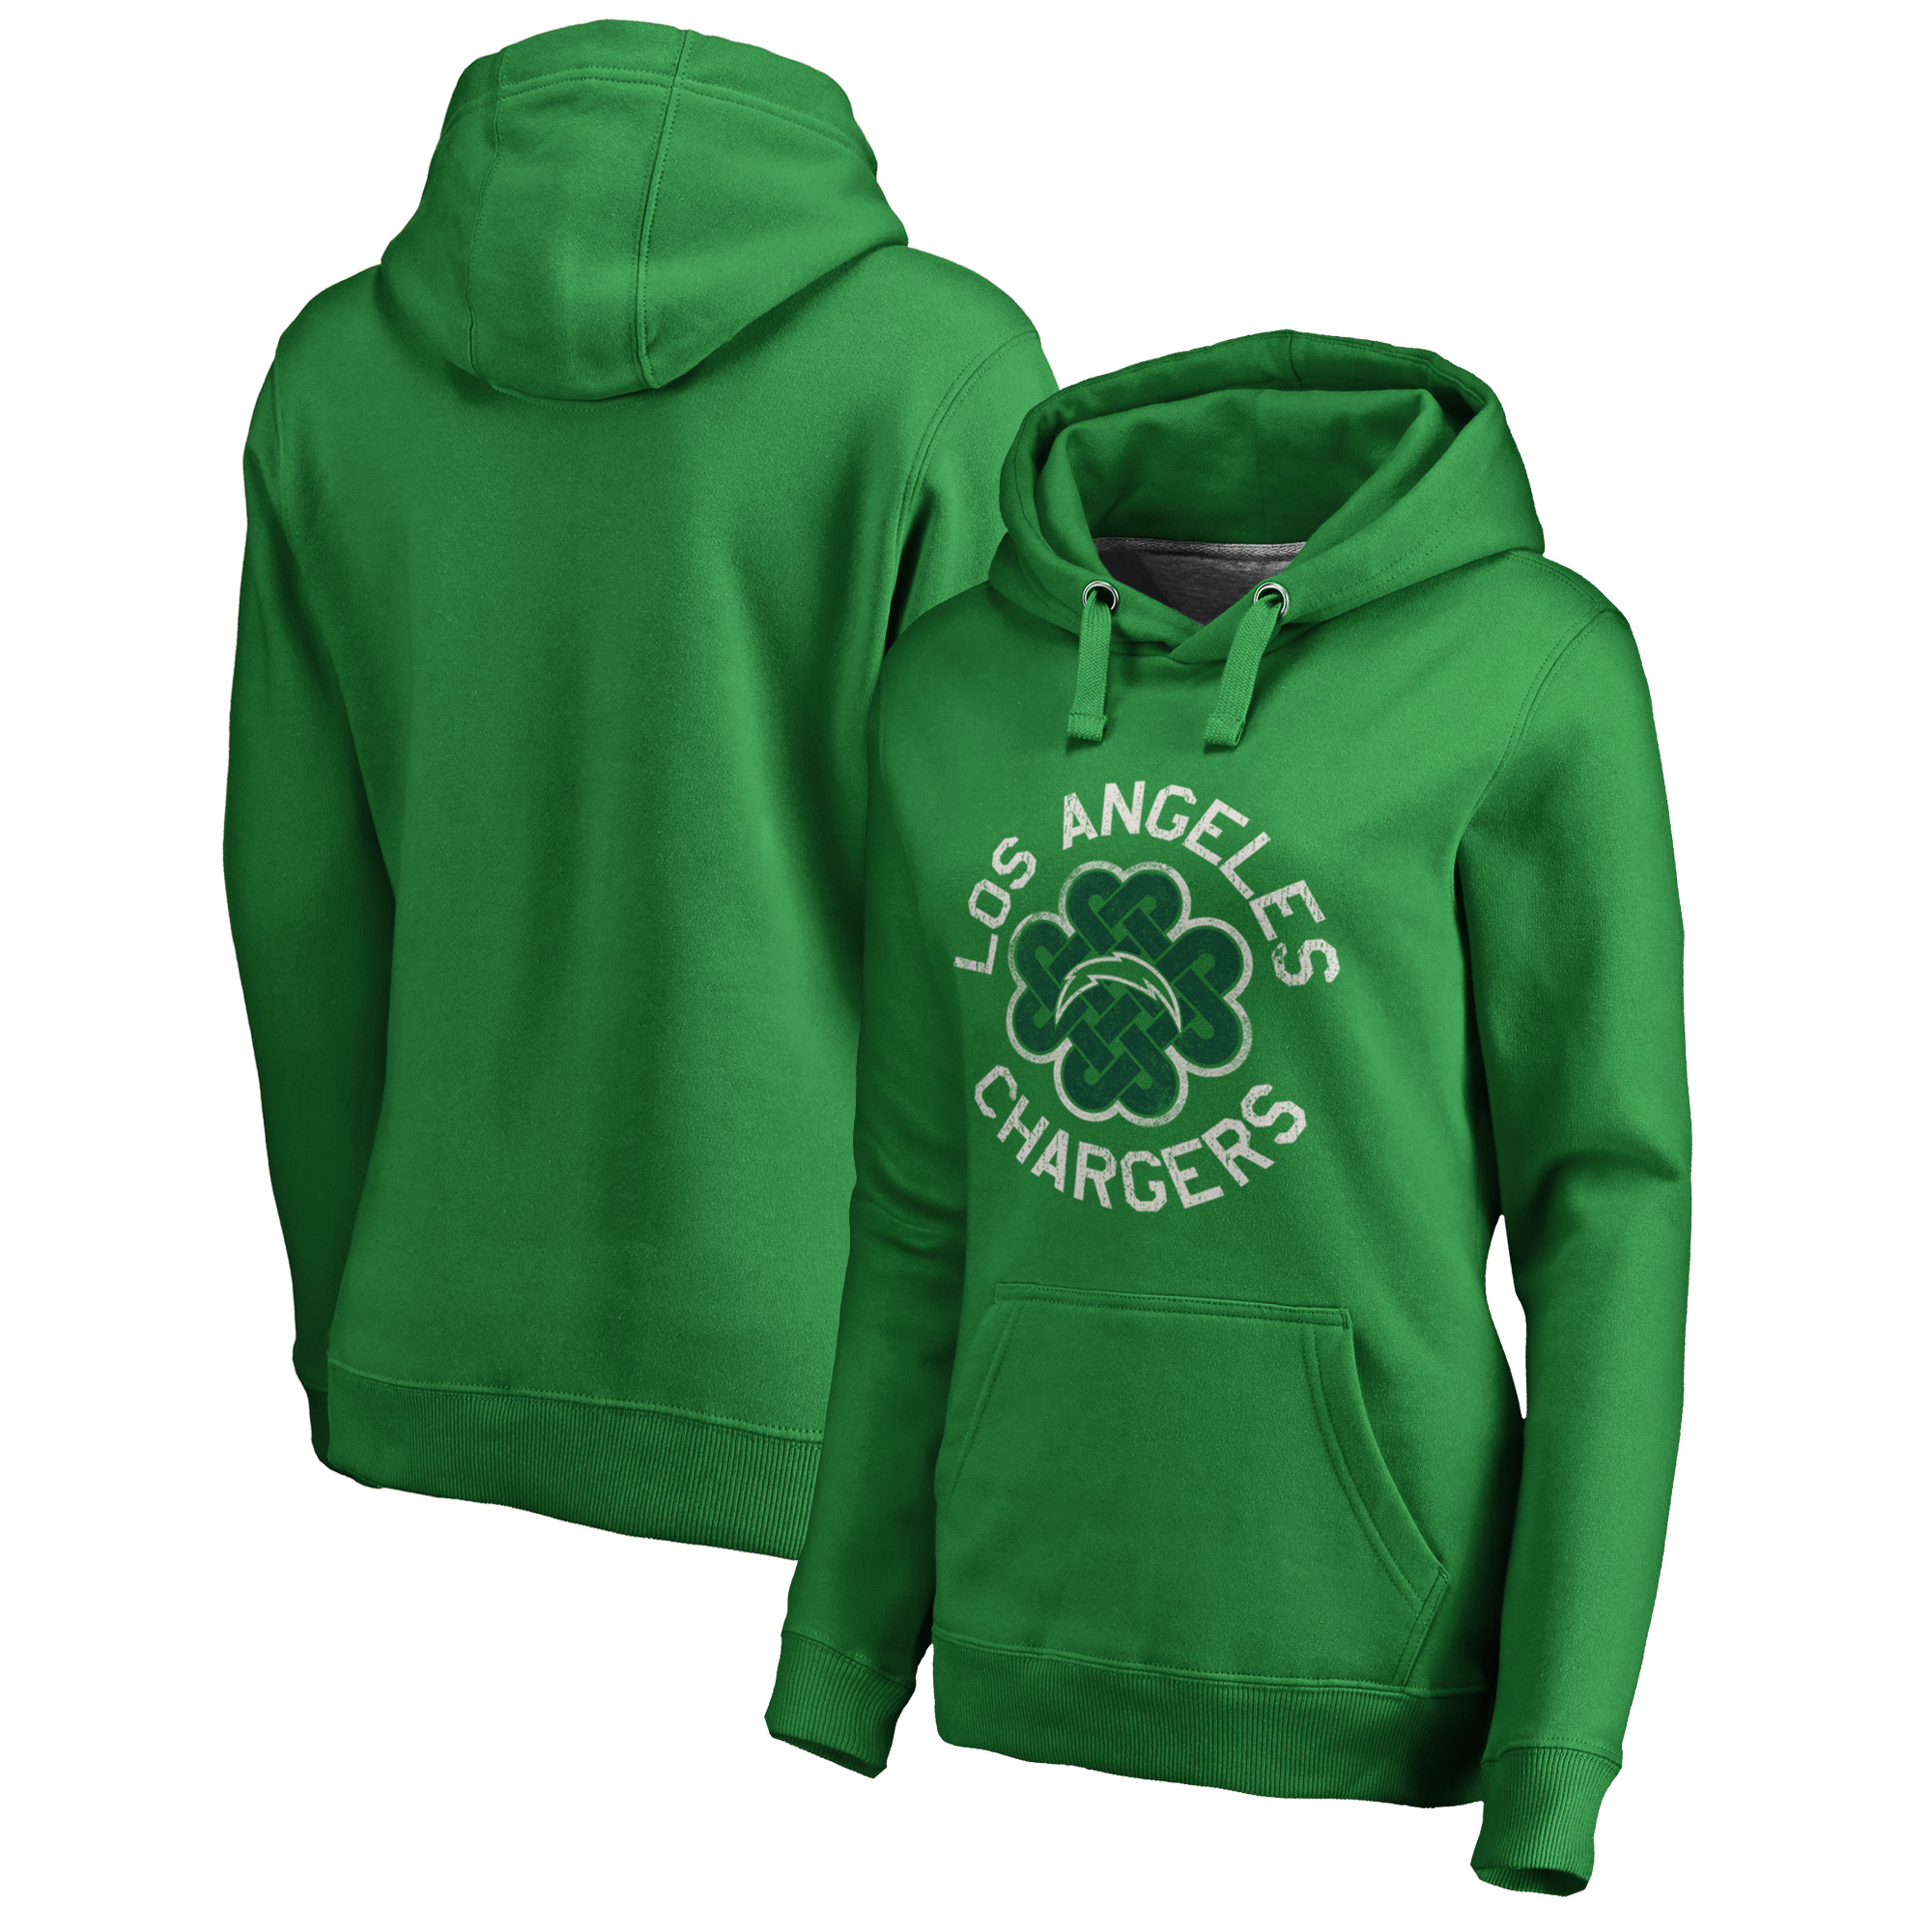 Los Angeles Chargers NFL Pro Line by Fanatics Branded Women's St. Patrick's Day Luck Tradition Pullover Hoodie - Kelly Green